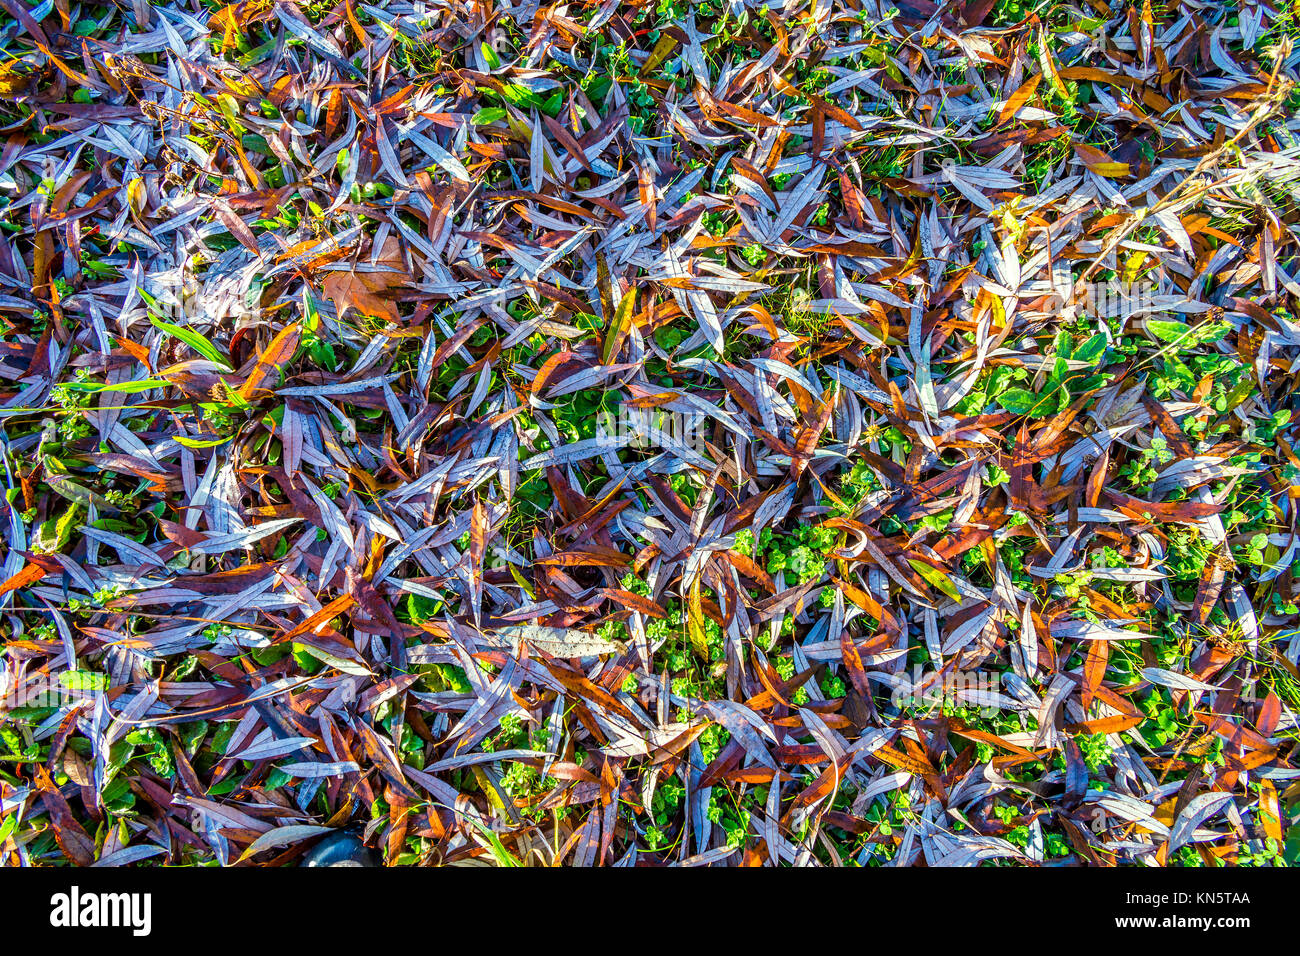 Willow tree leaves on ground. - Stock Image